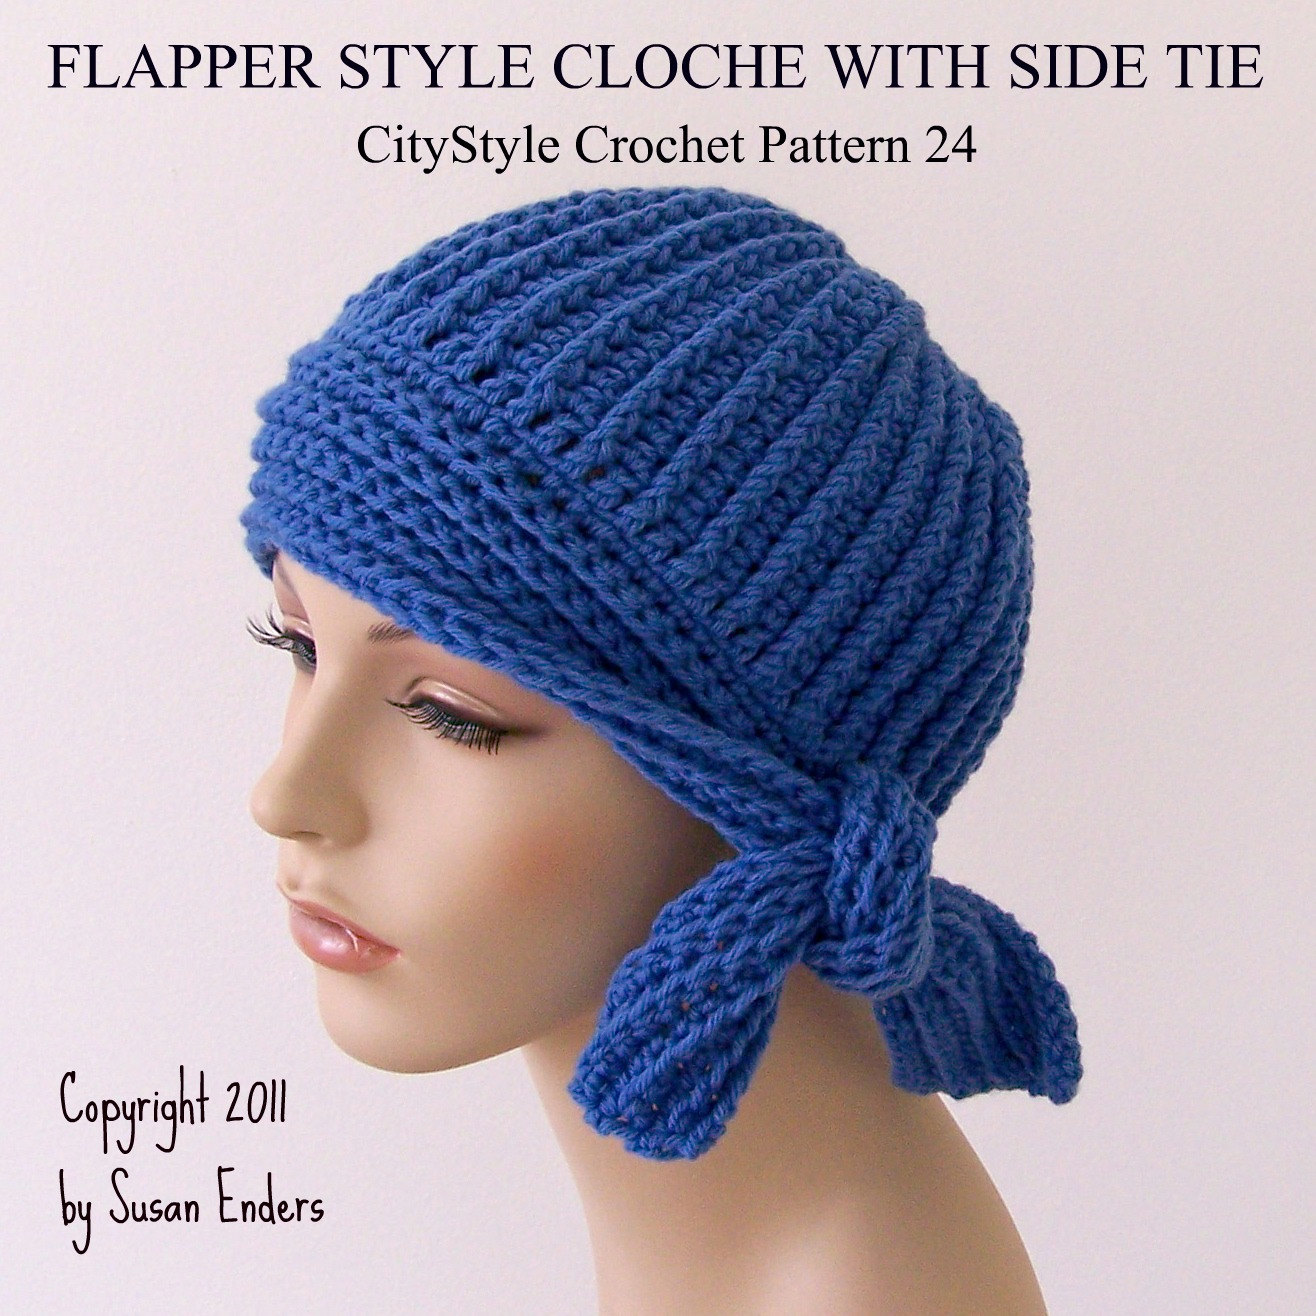 Crochet Hat Pattern Flapper Style Cloche With Side Tie Easy Etsy